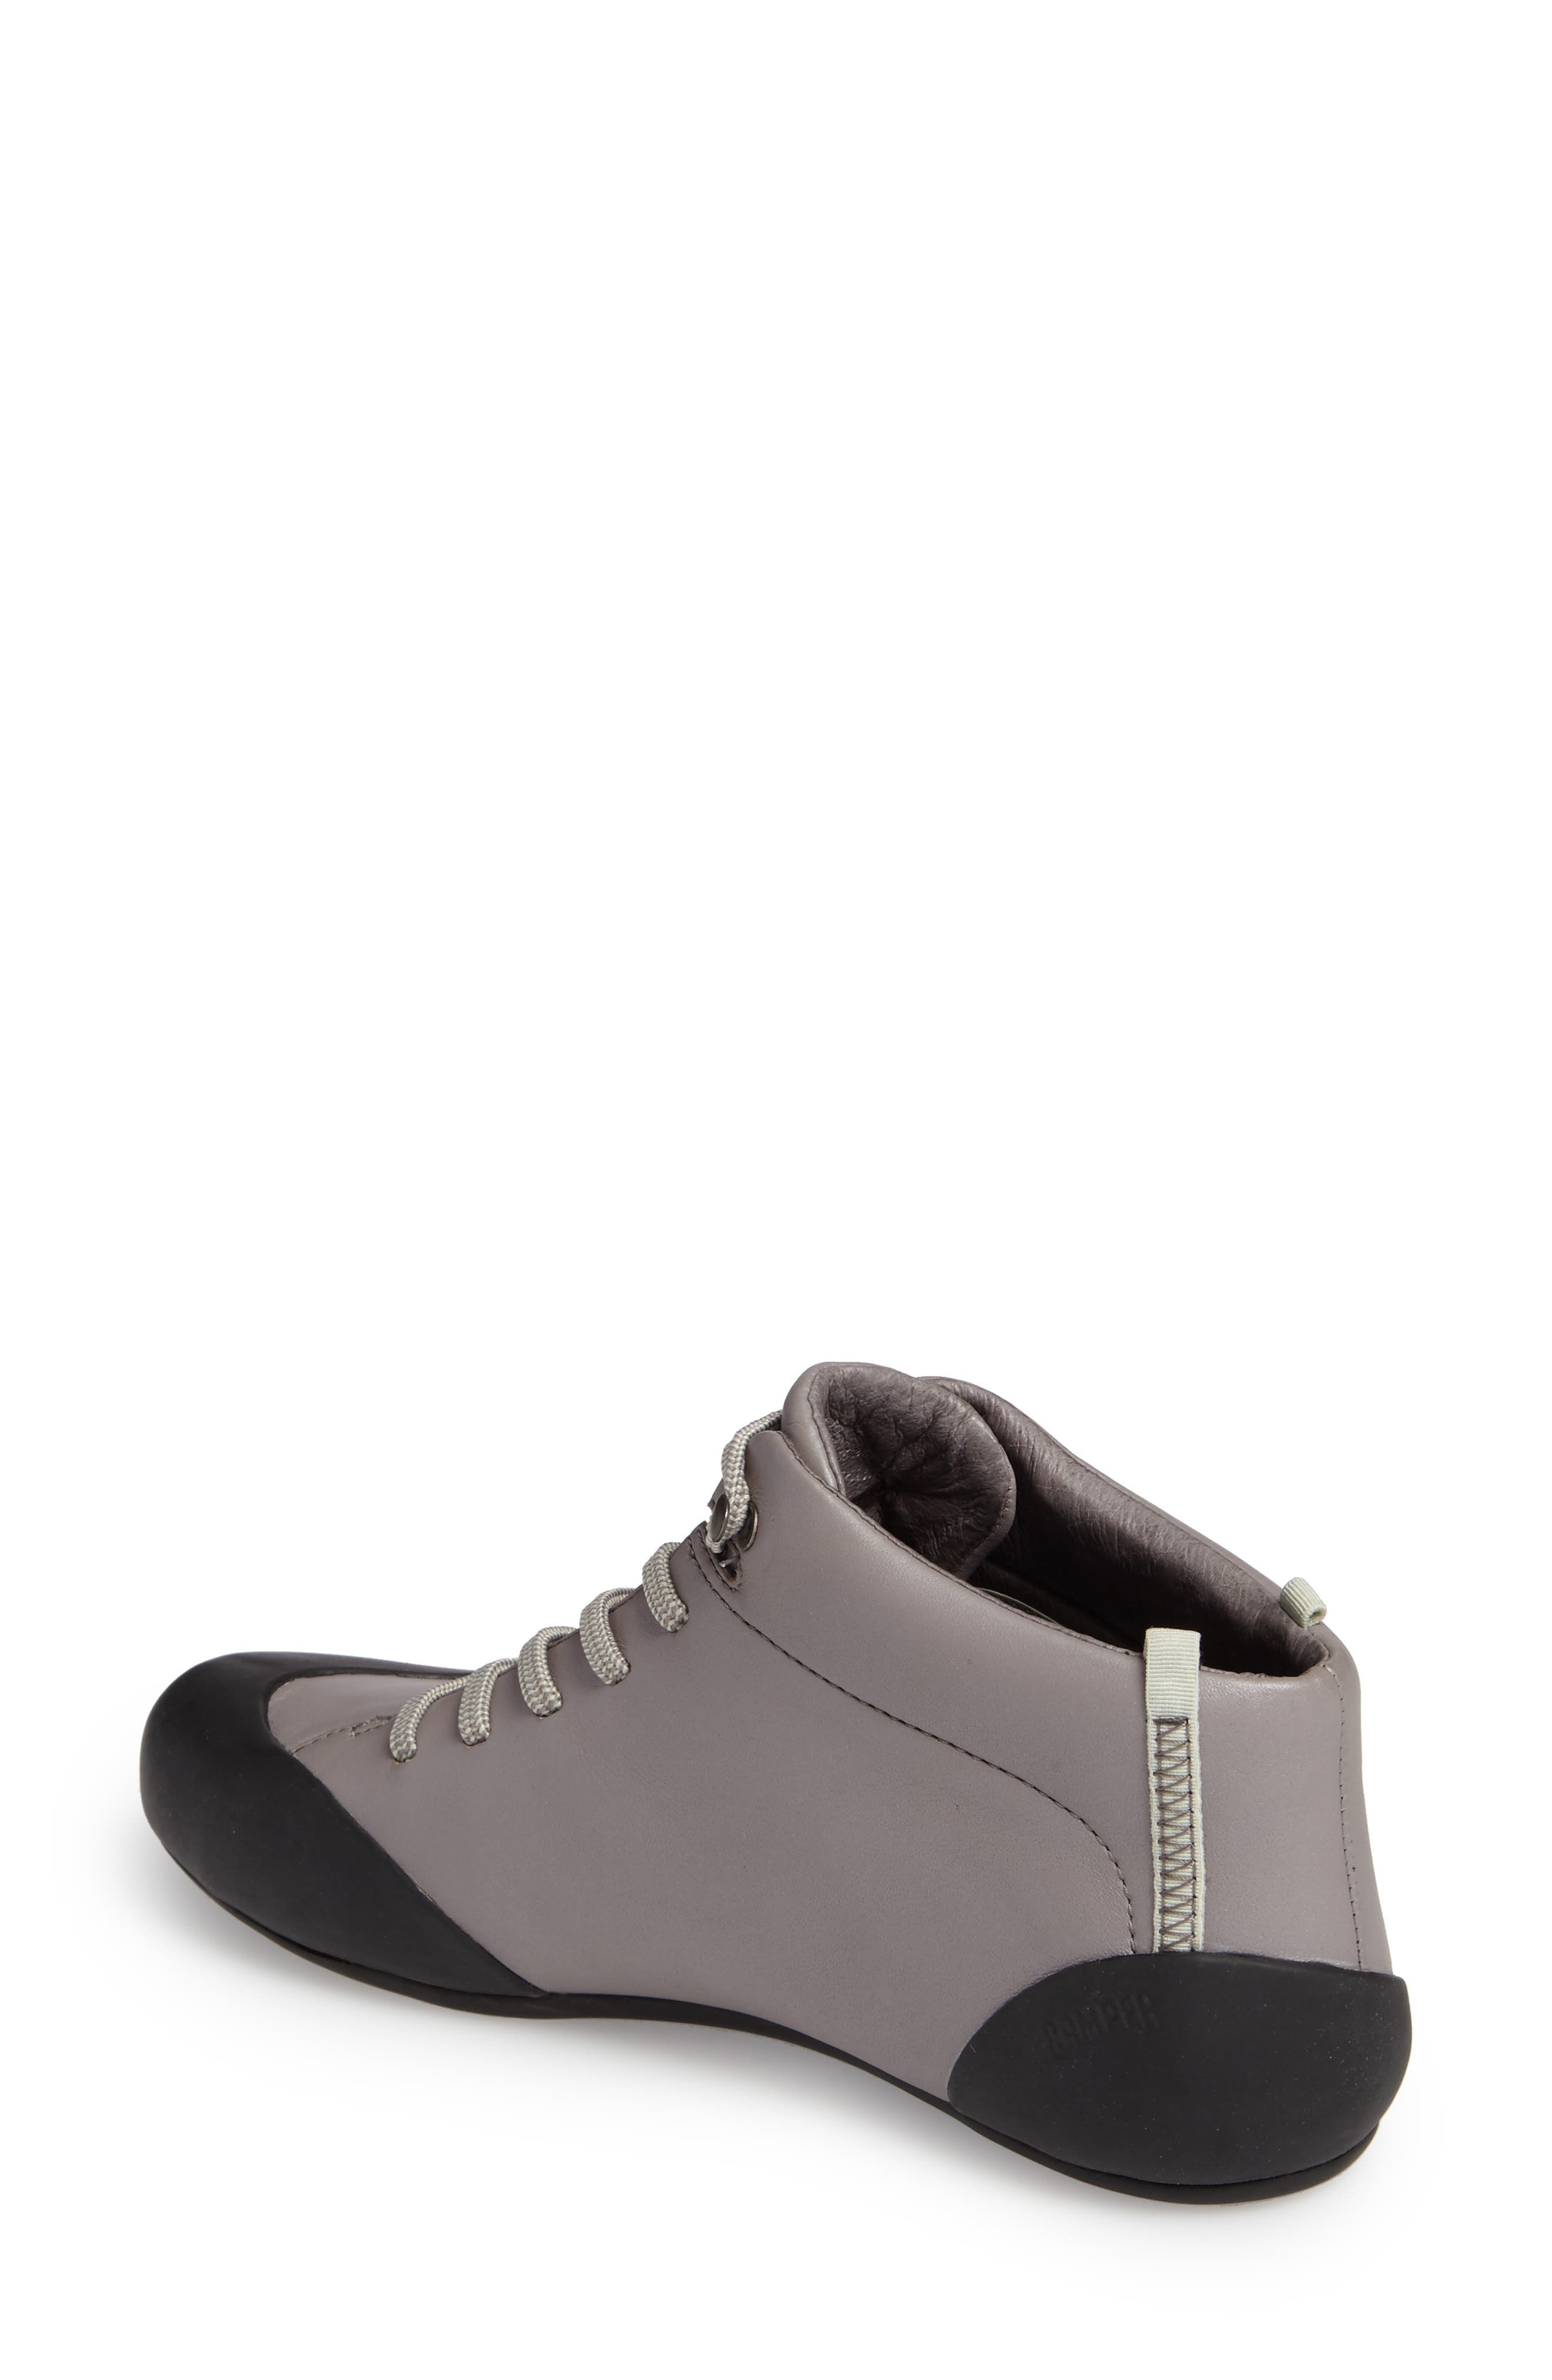 Alternate Image 2  - Camper Peu Senda Sneaker (Women)